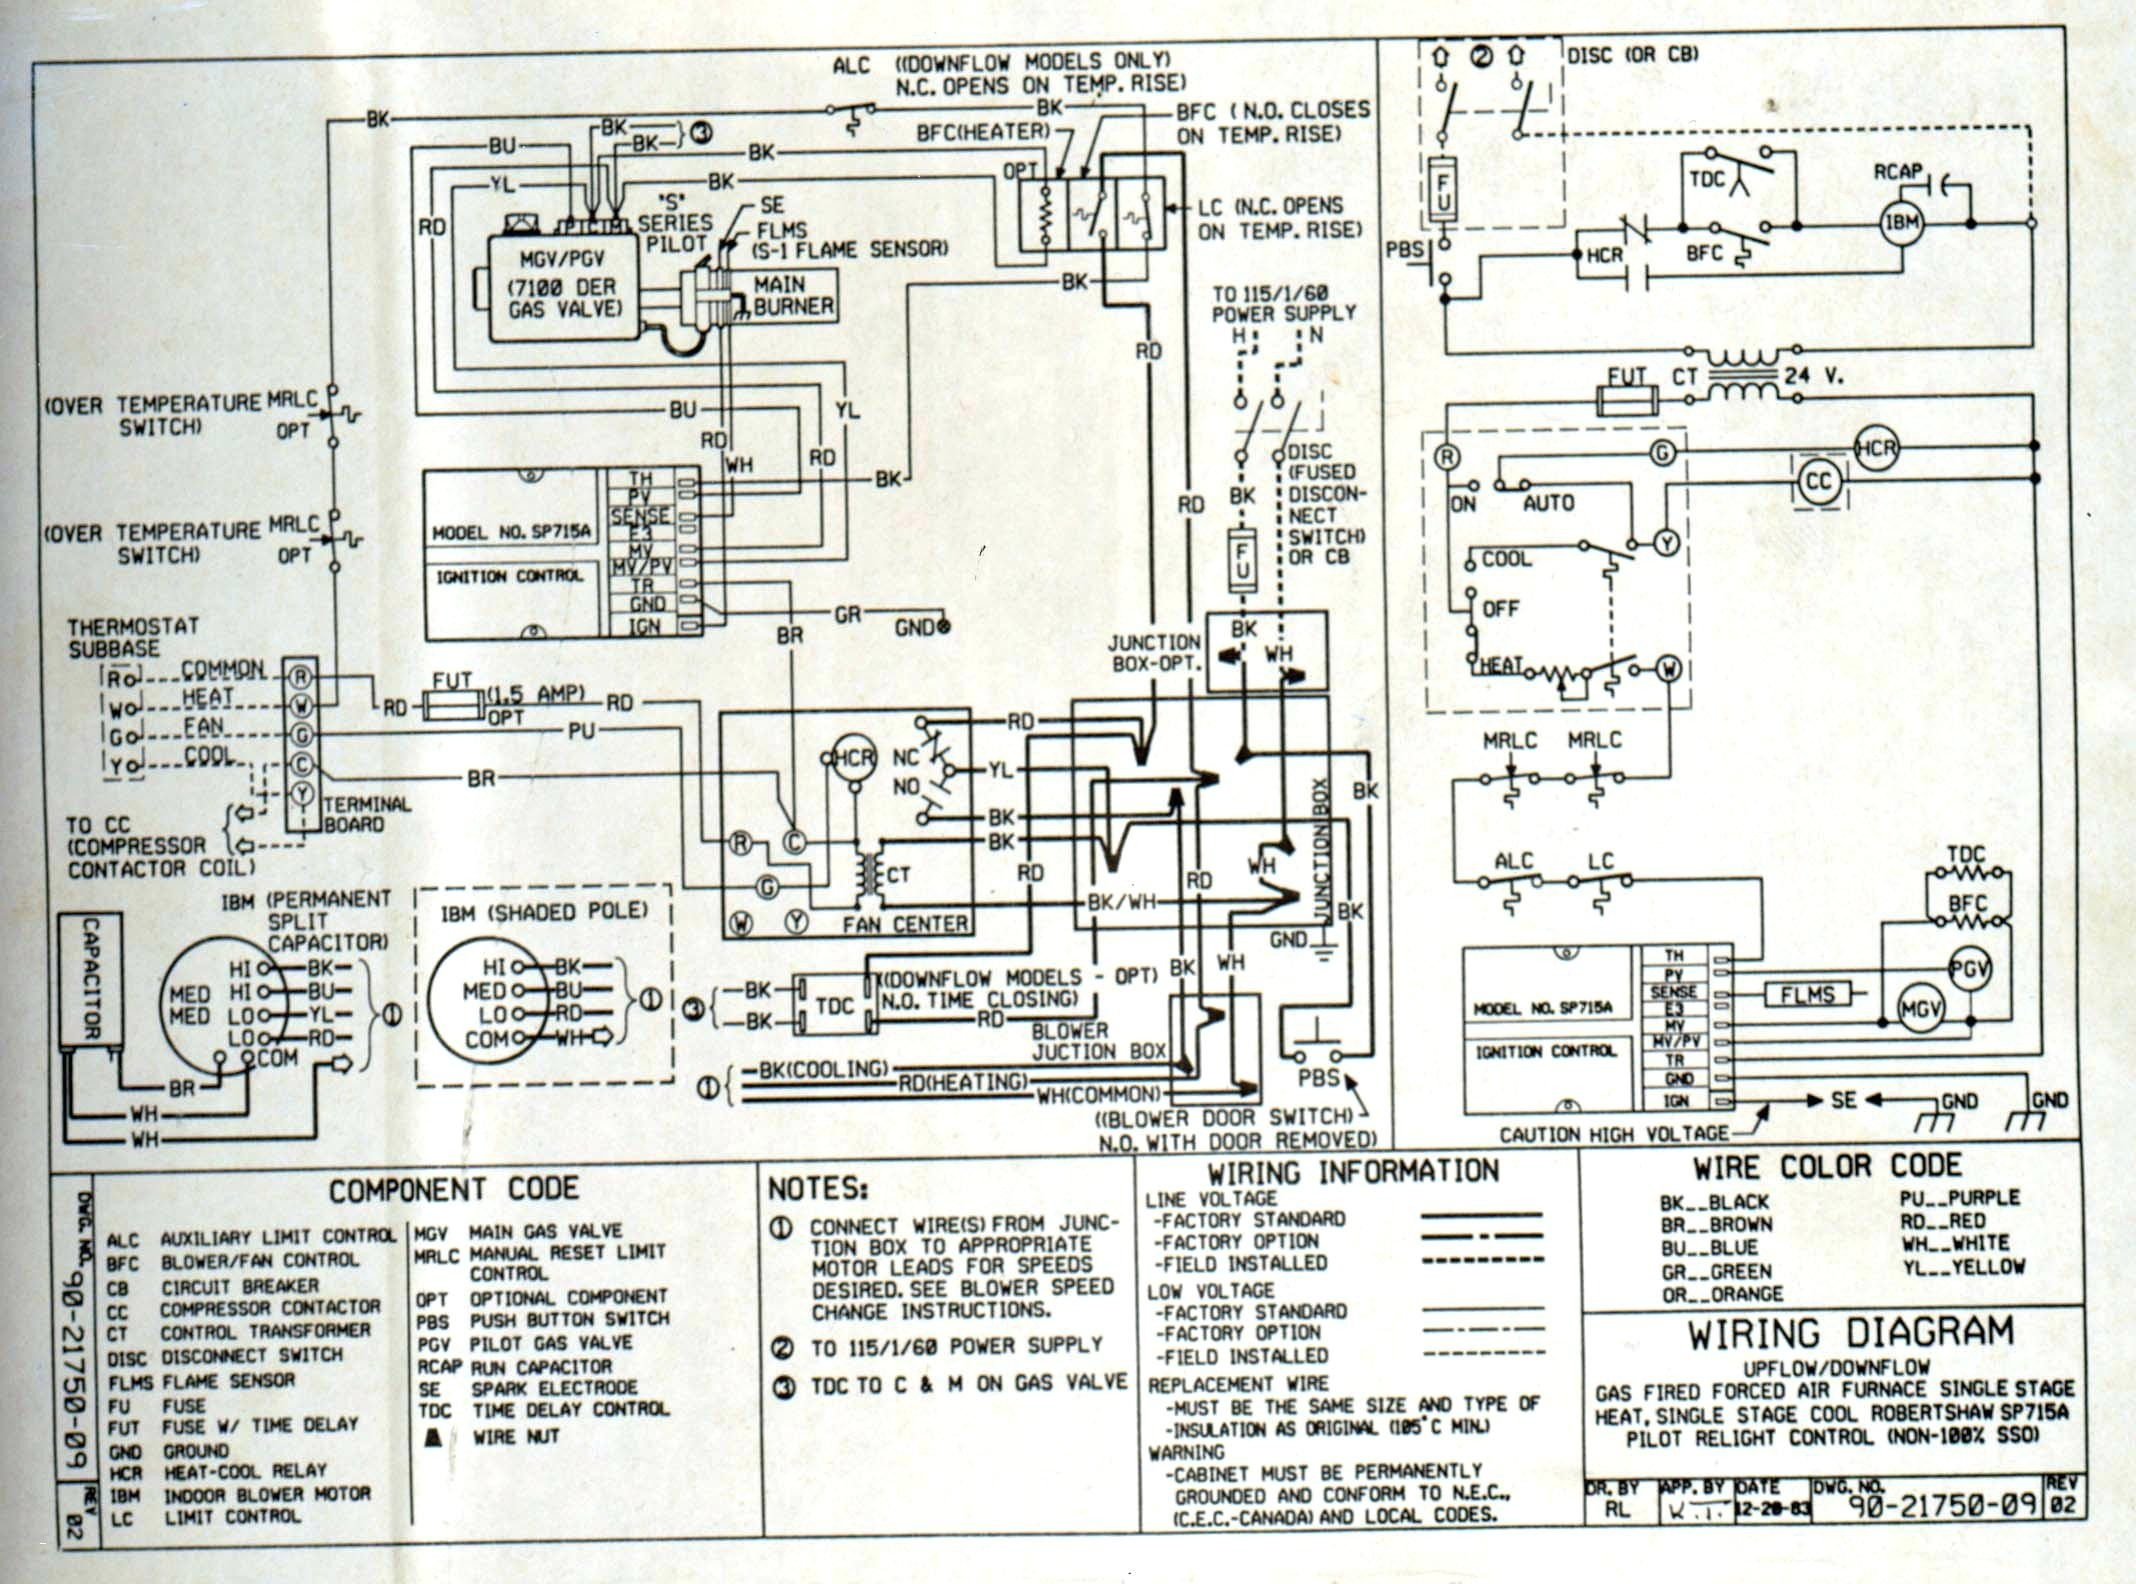 Carrier Infinity thermostat Wiring Diagram - Goodman Air Handler Wiring  Diagram Unique Wiring Diagram Goodman Rh